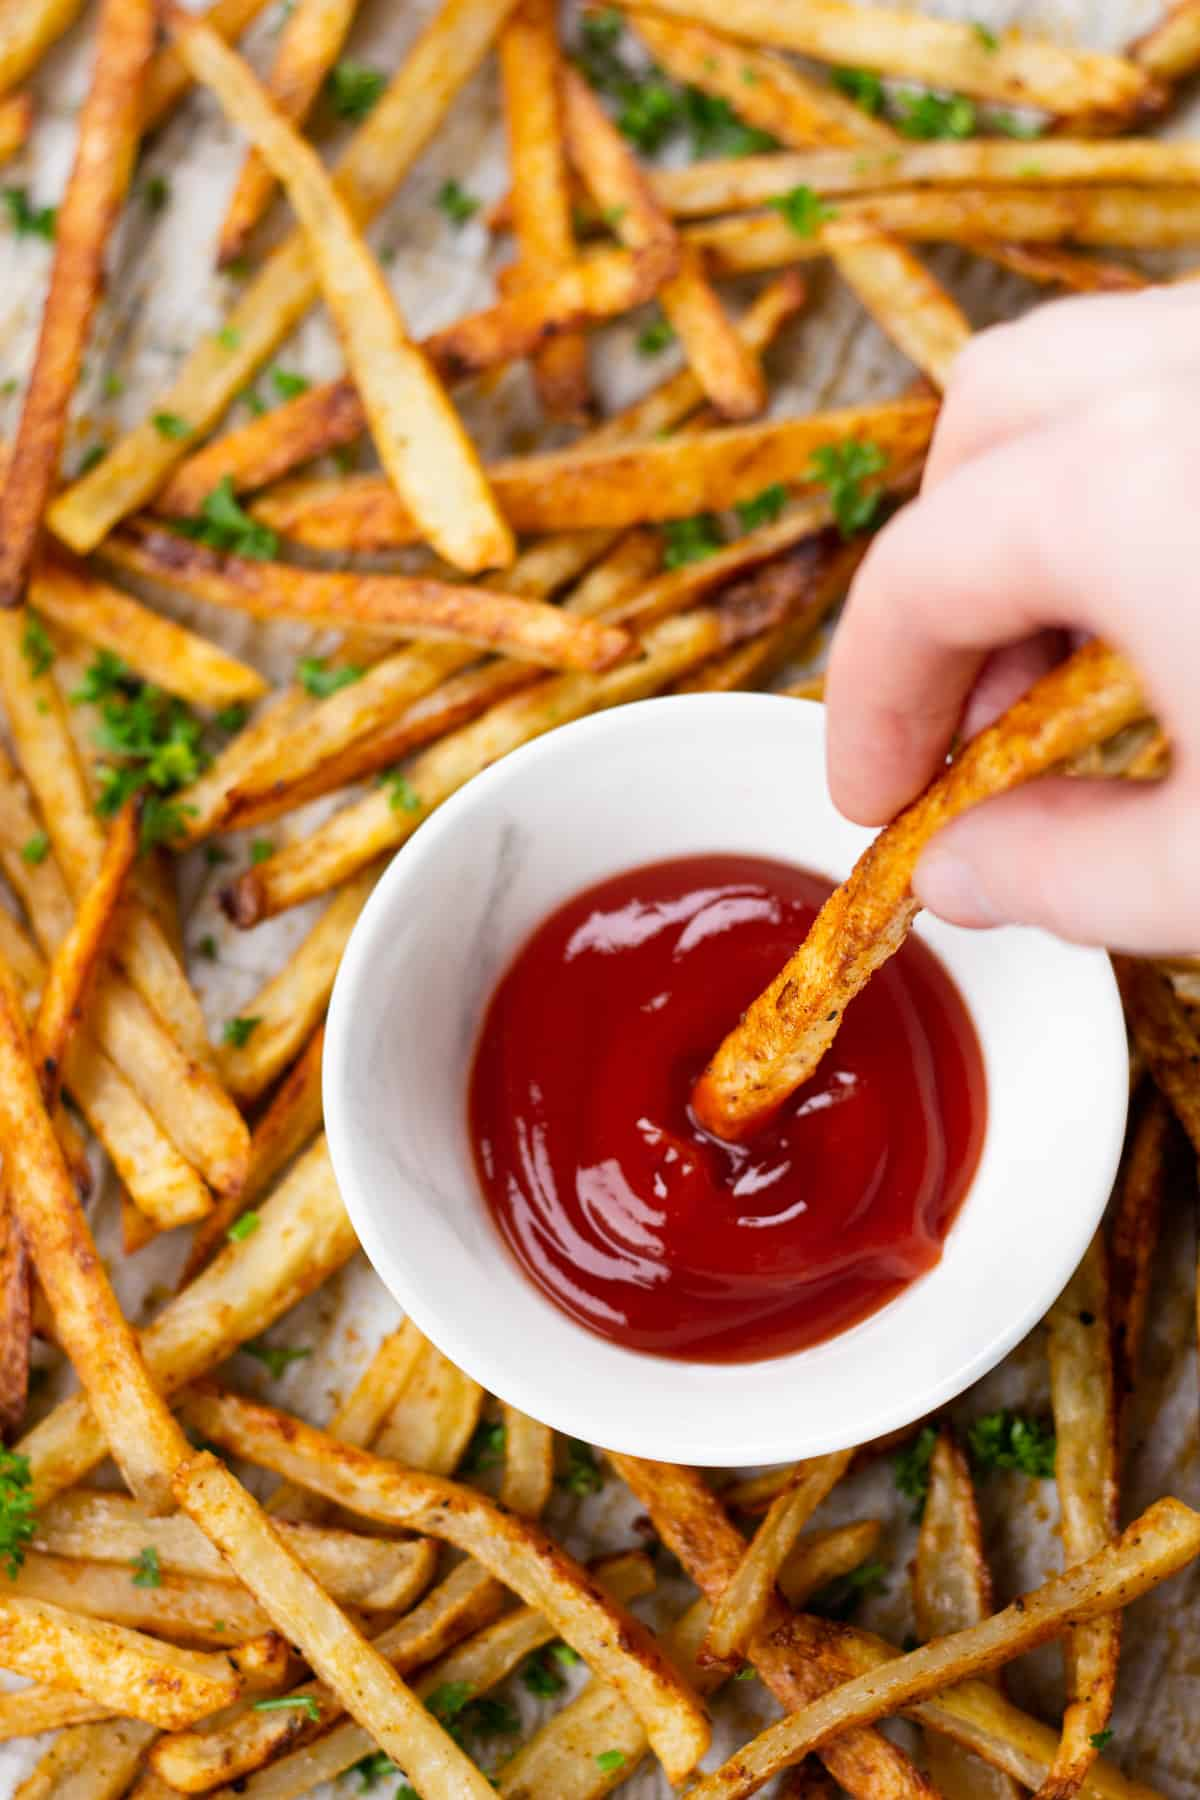 dipping baked fries in ketchup.